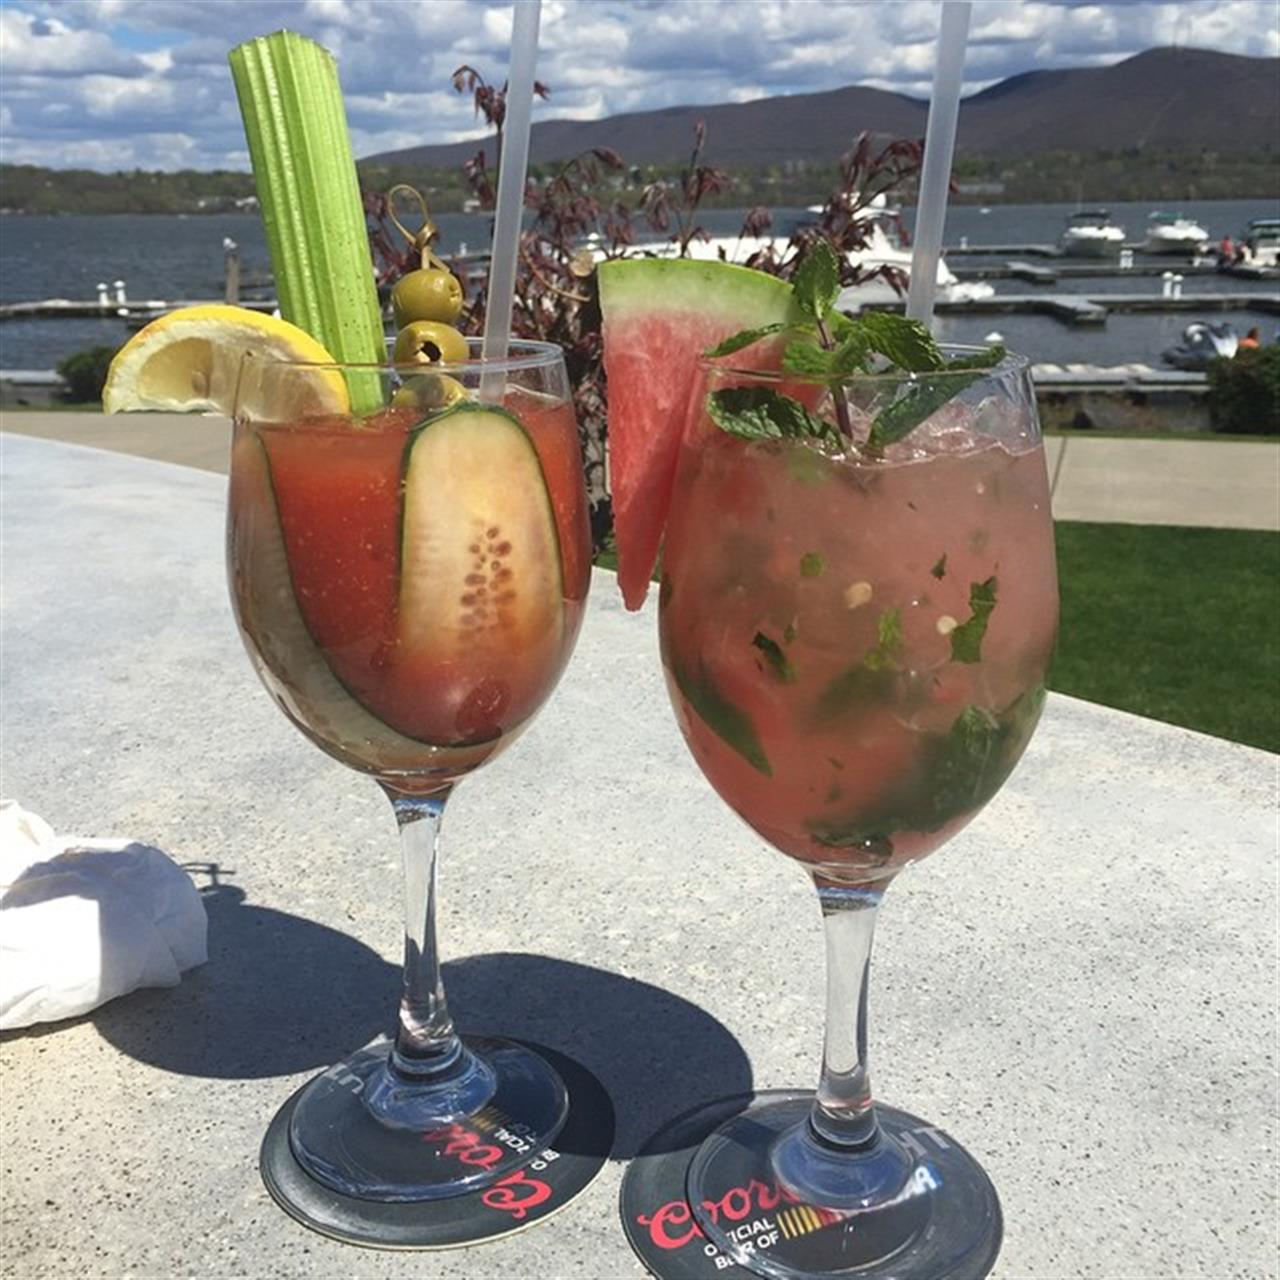 I don't know what's prettier, the drinks or the view! Life along the #Hudson river! #latergram #leadingrelocal #northofnyc